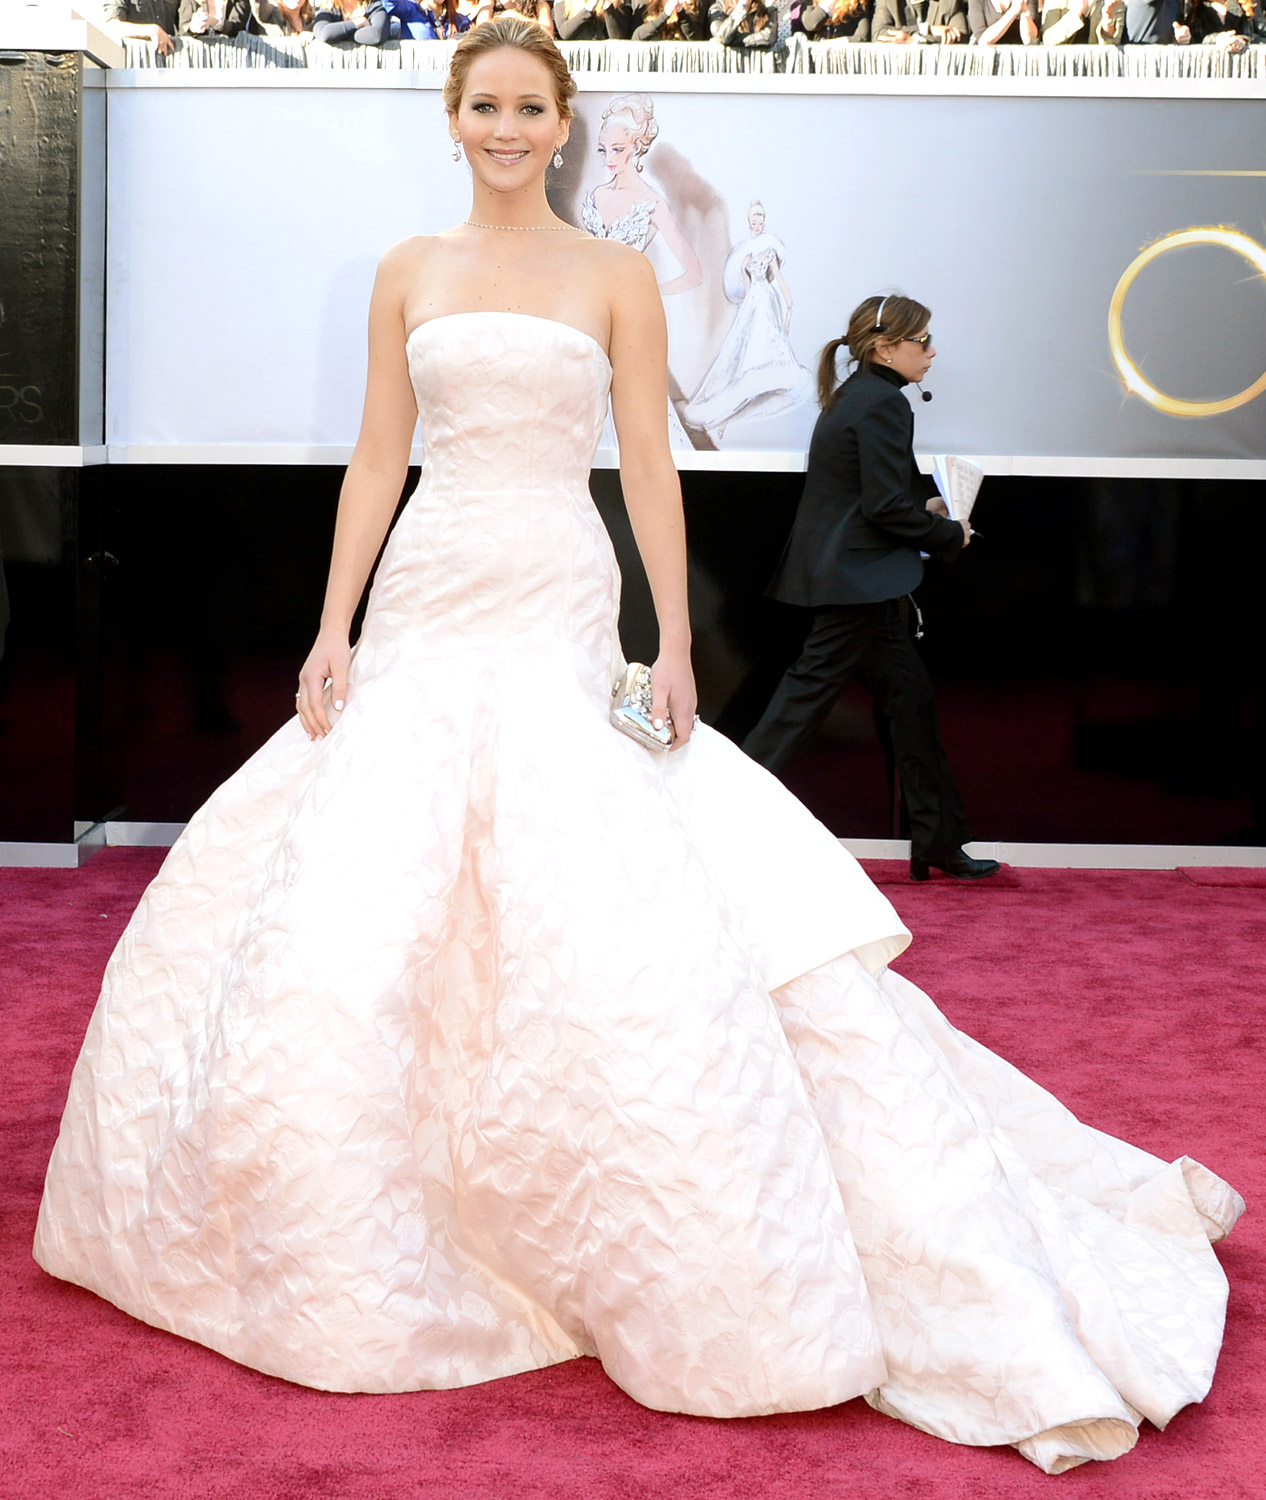 http://2.bp.blogspot.com/-nuKk41mPp3A/UStk9vhmSYI/AAAAAAAAaG8/ASXd-coaZfo/s1600/oscars+13+jennifer-lawrence+dior+couture+dress+chopard+necklace.jpg